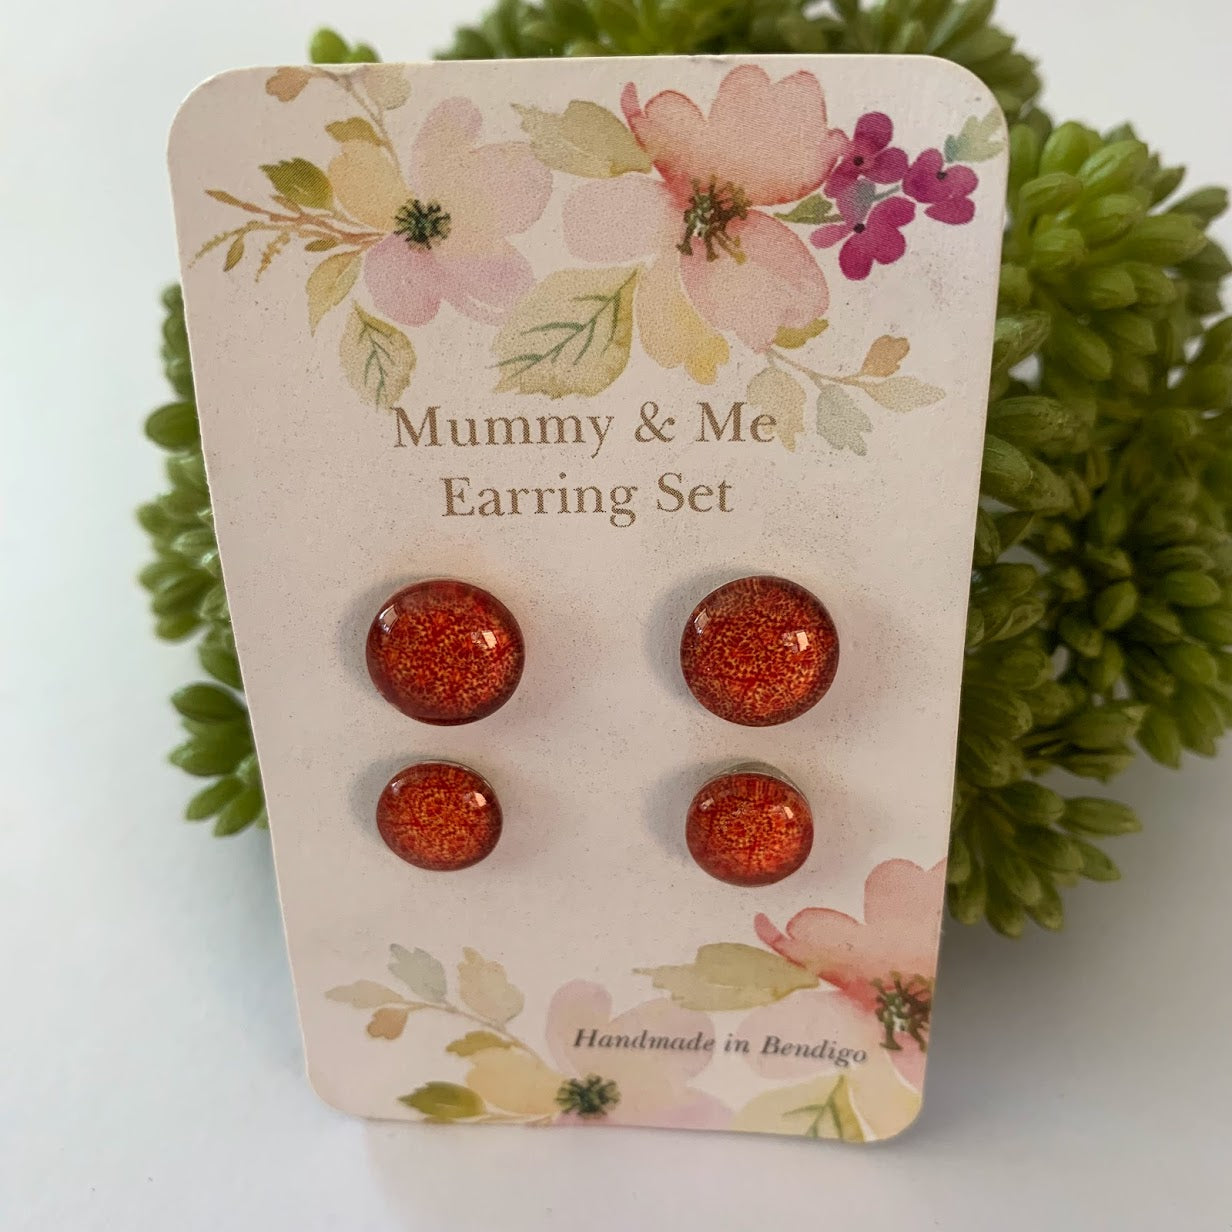 Mummy & Me Earring Set